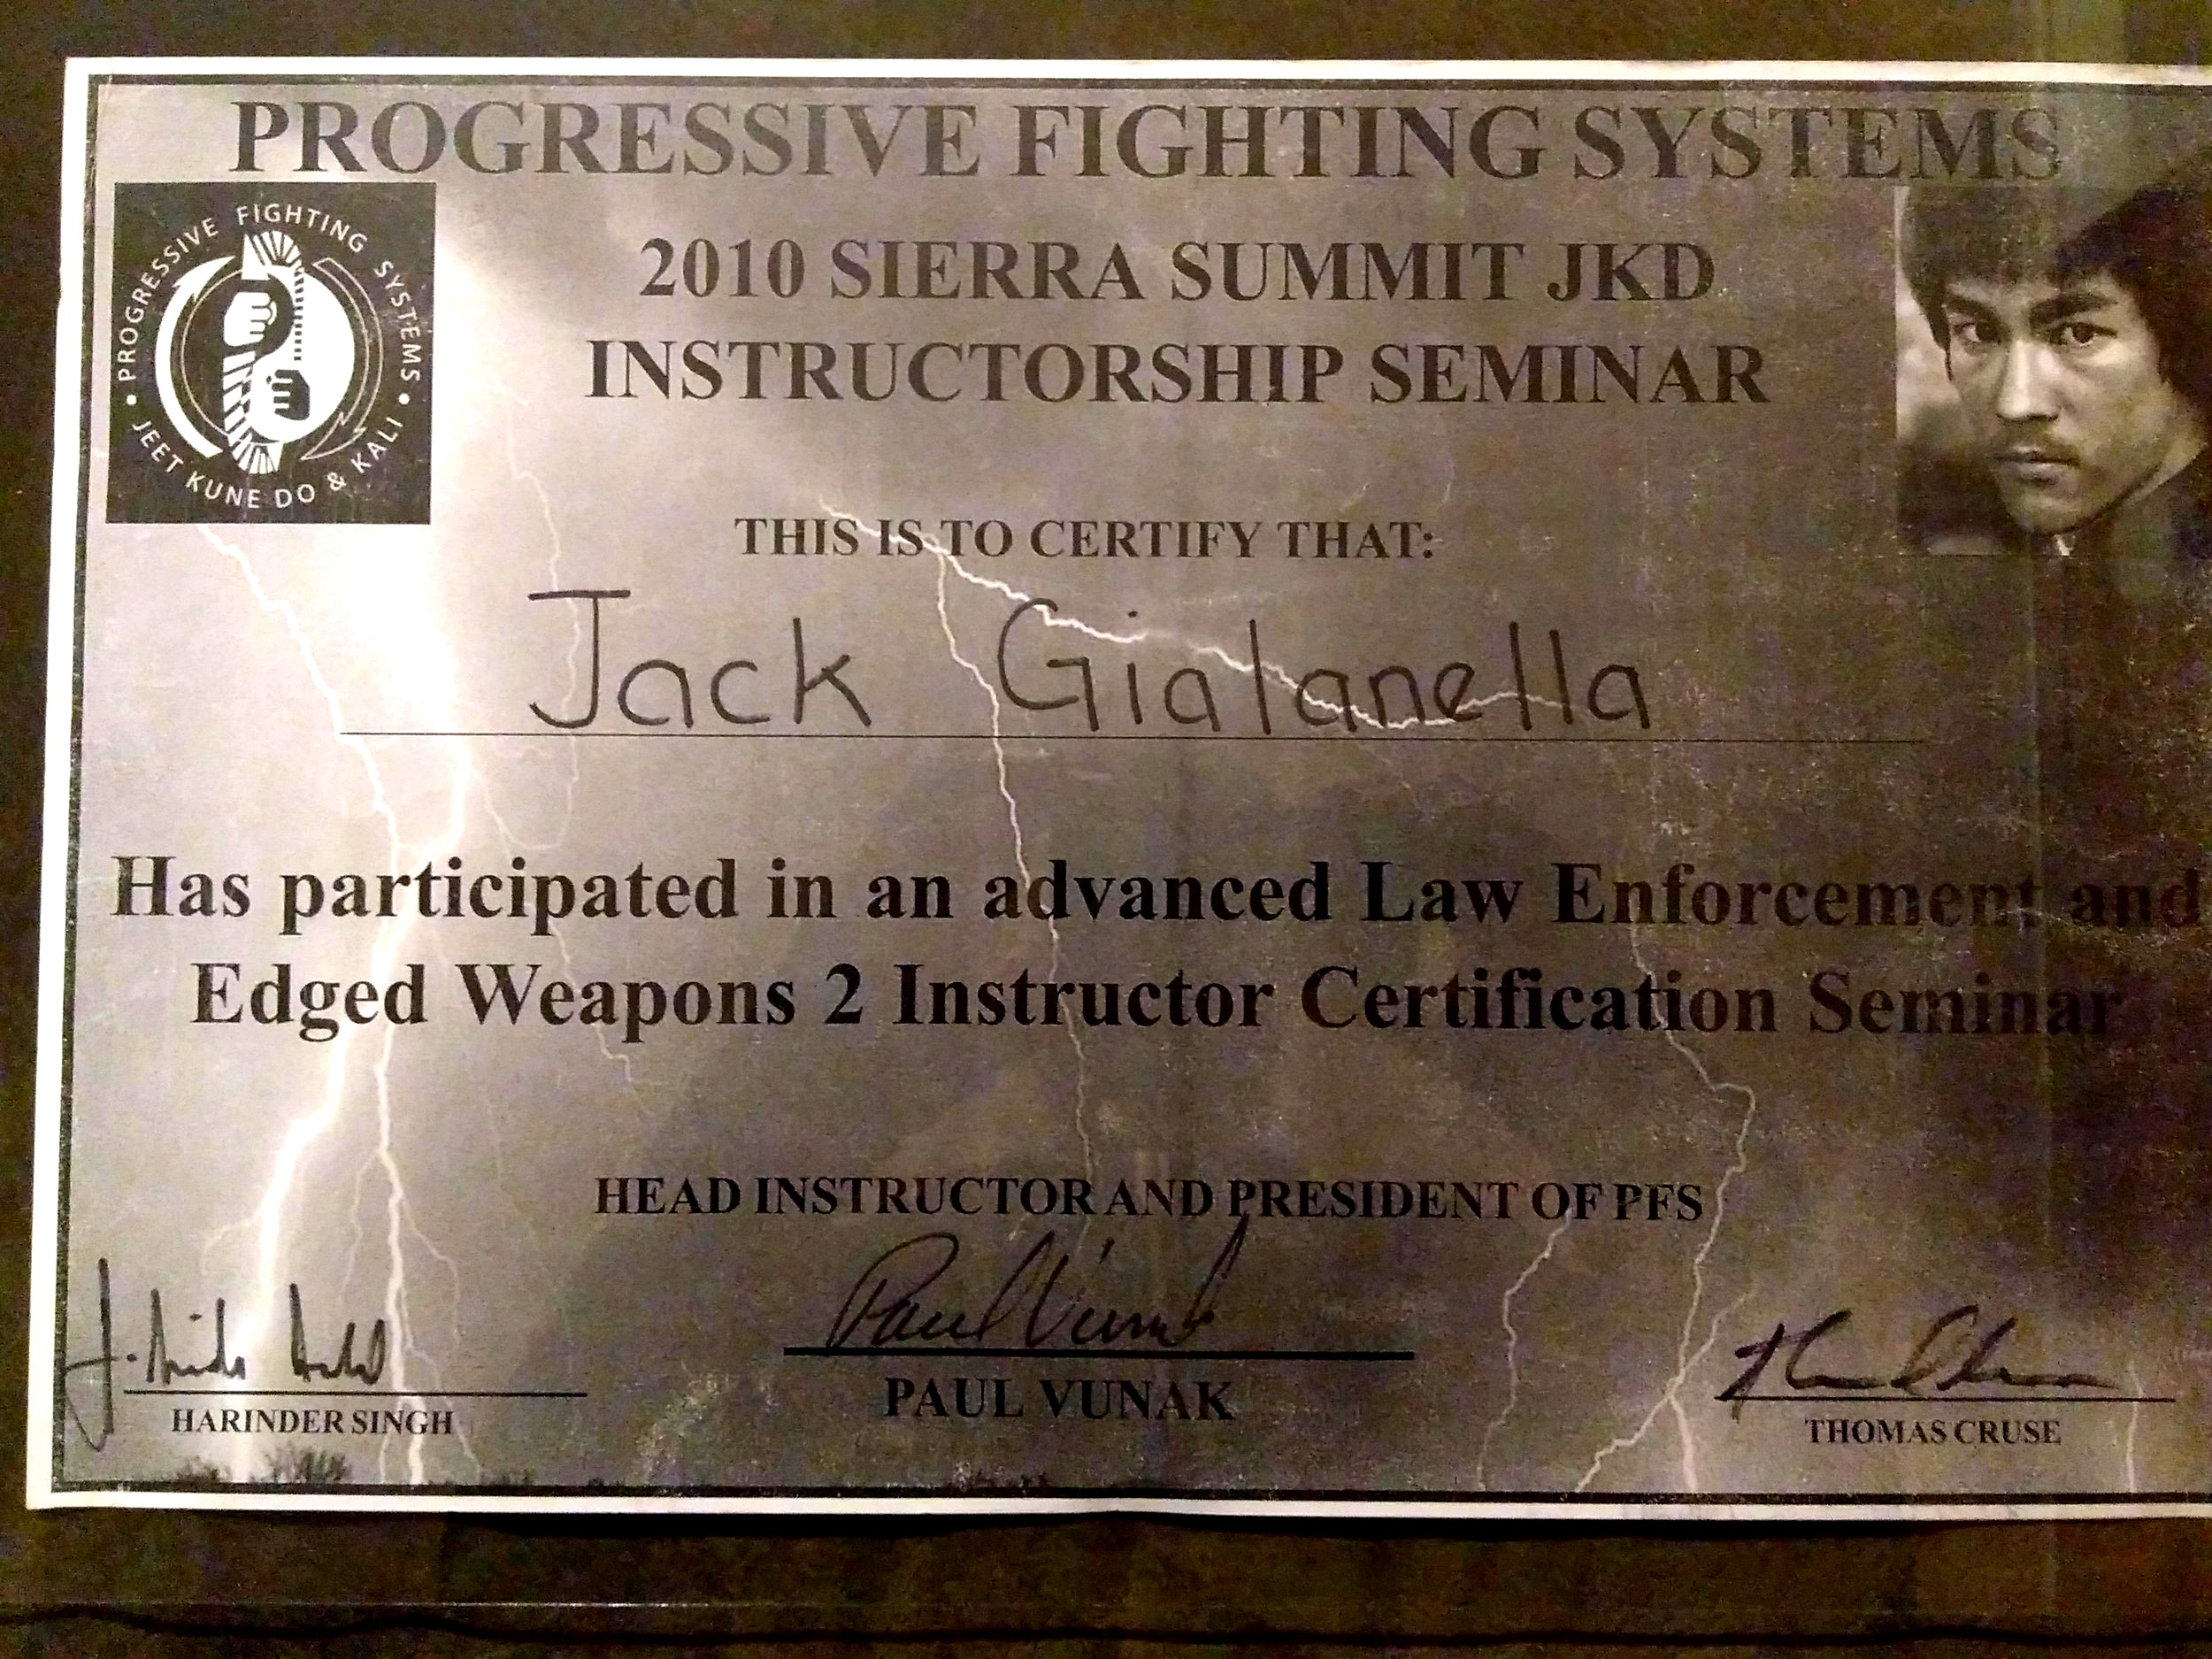 Advanced Law Enforcement and Edged Weapons—2010